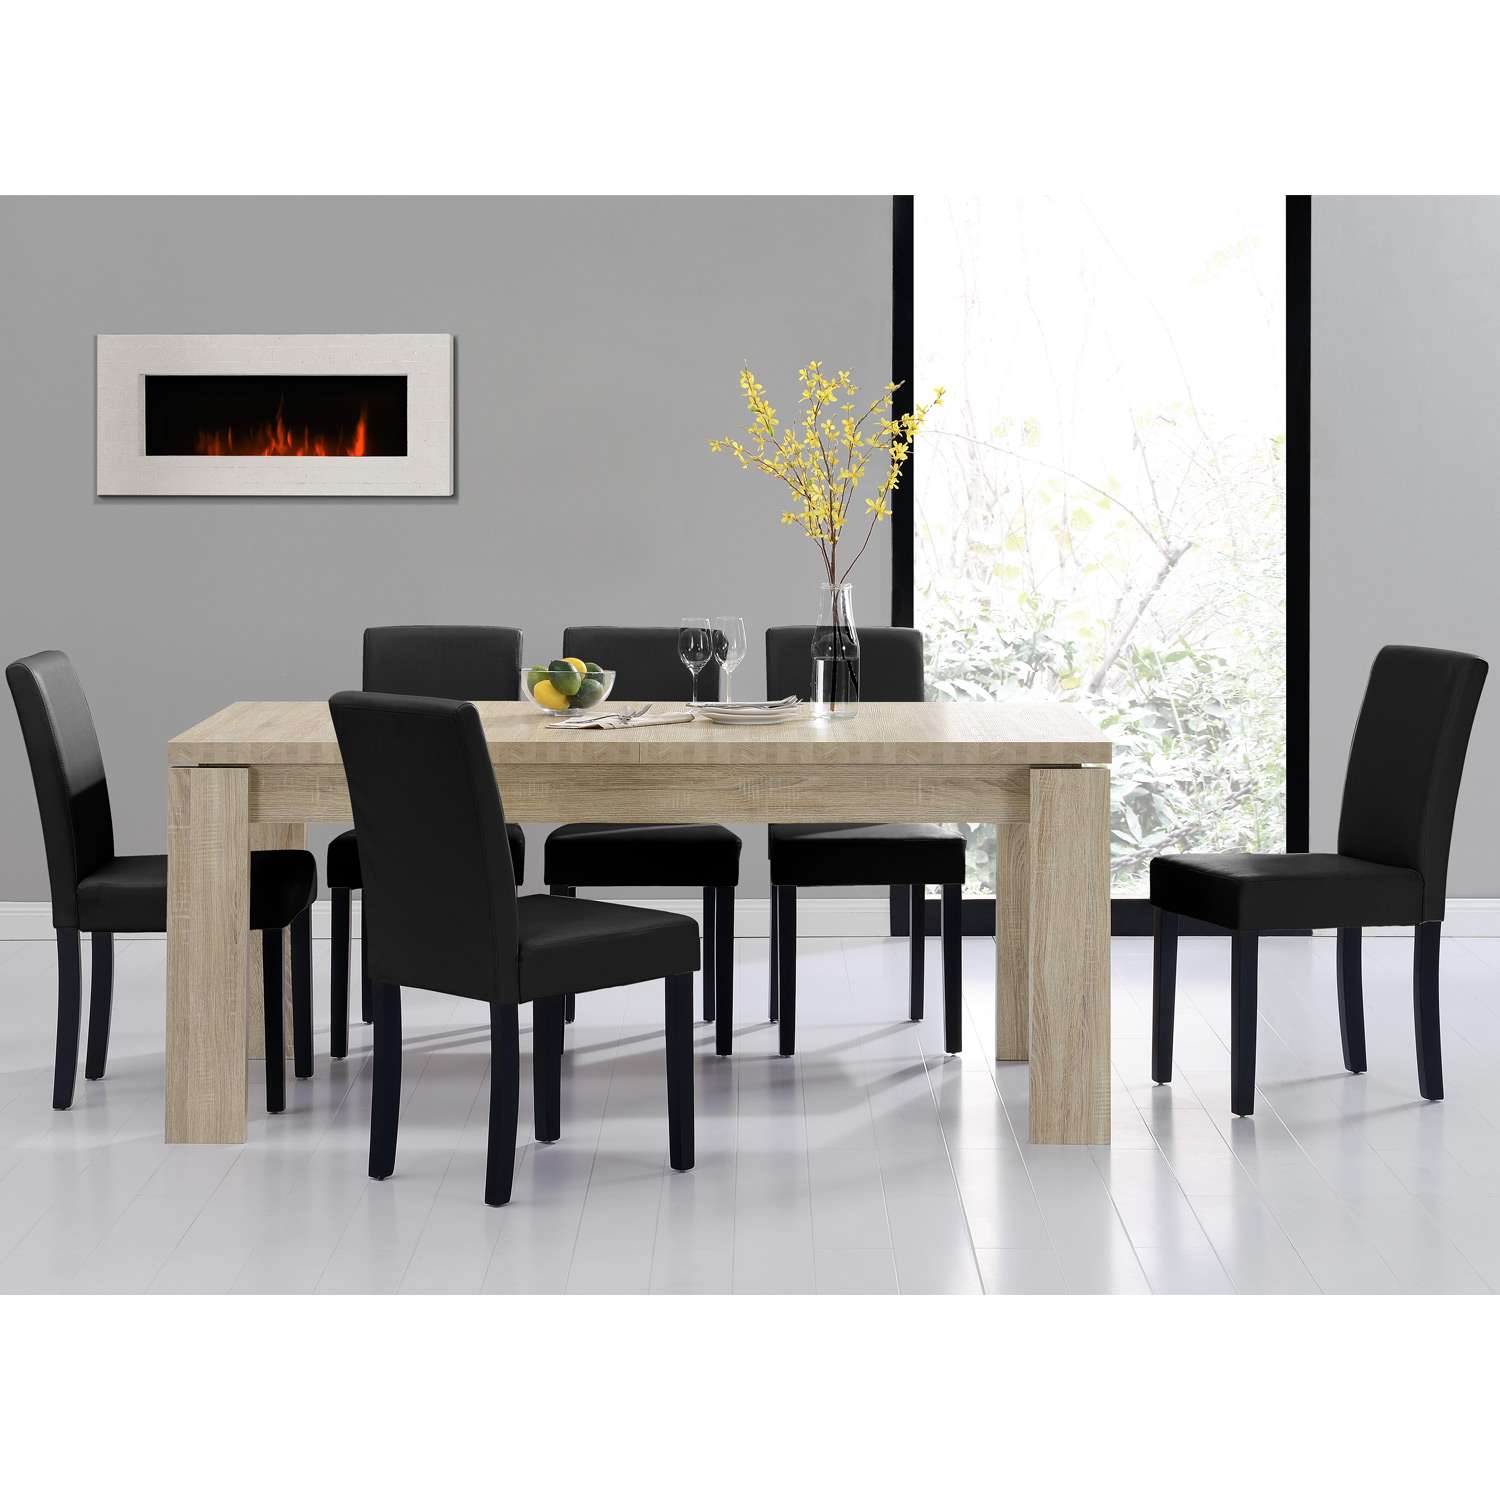 DINING TABLE 180x95 LIMED OAK 6 CHAIRS BLACK DINING ROOM TABLE NE